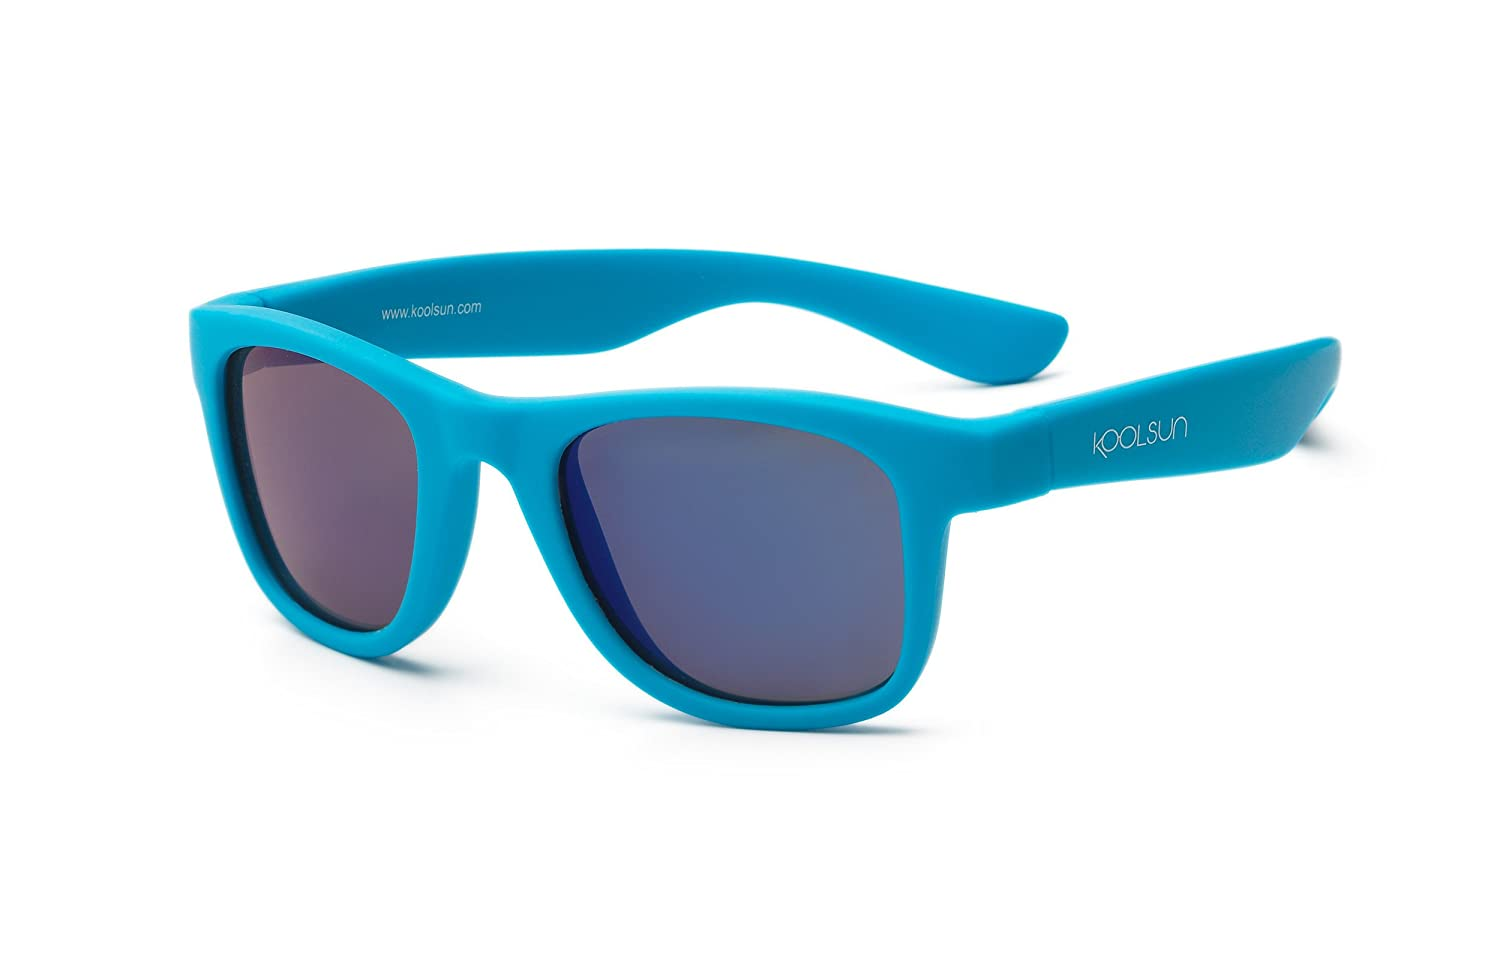 Koolsun Baby and Child Sun Wave Fashion 1 + Neon blue mirrored 100% UV Protection | Optical 1, Category 3